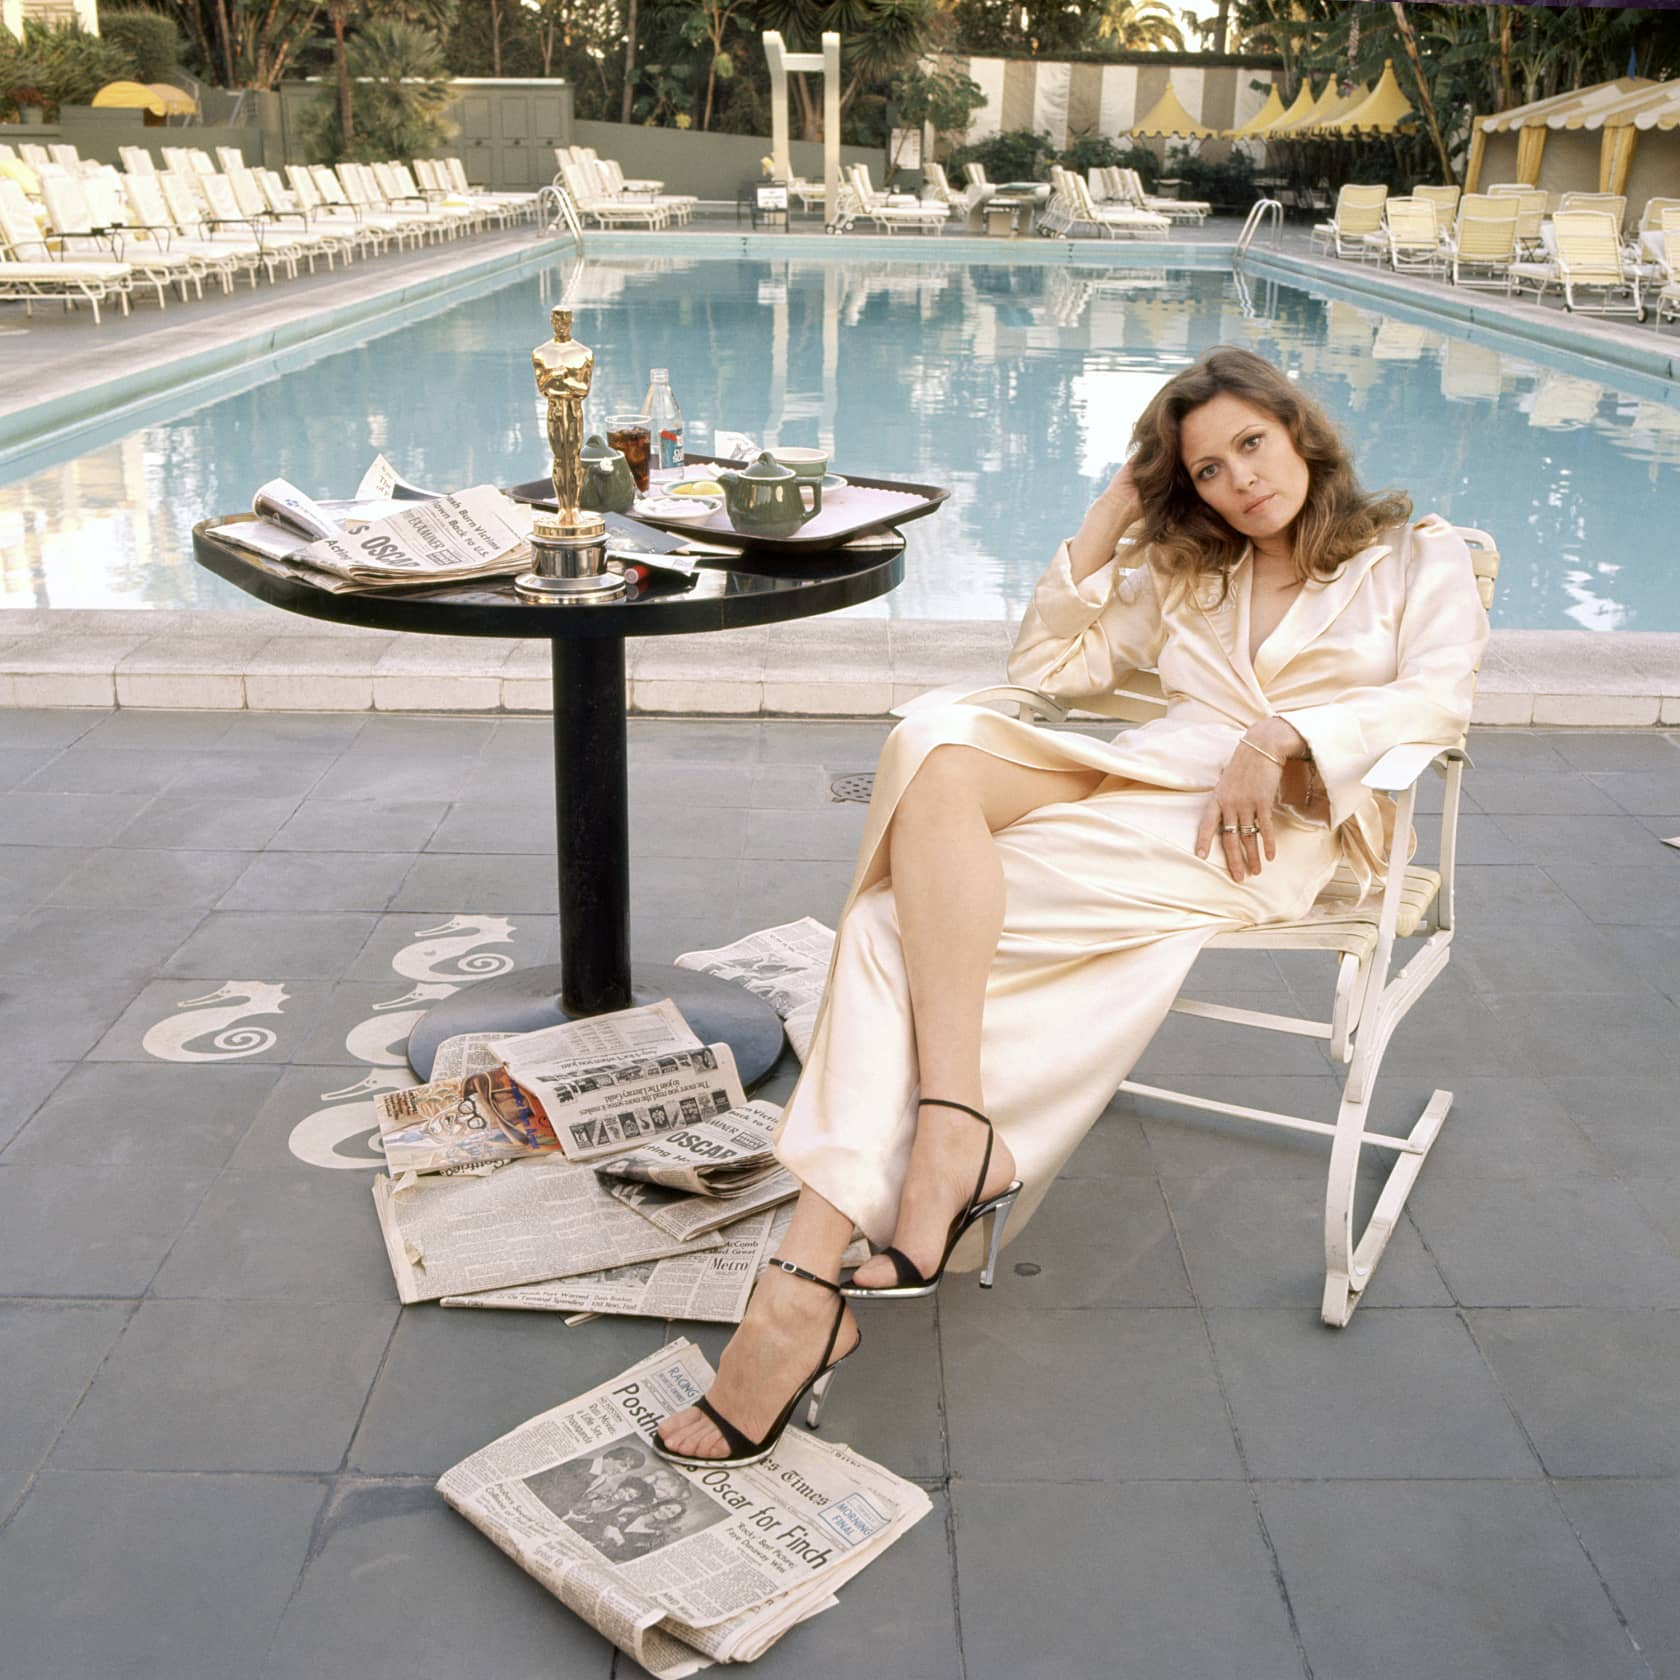 Terry O'Neill Faye Dunaway, Beverly Hills Hotel Posthumous C-Type Print *available in other mediums & editions